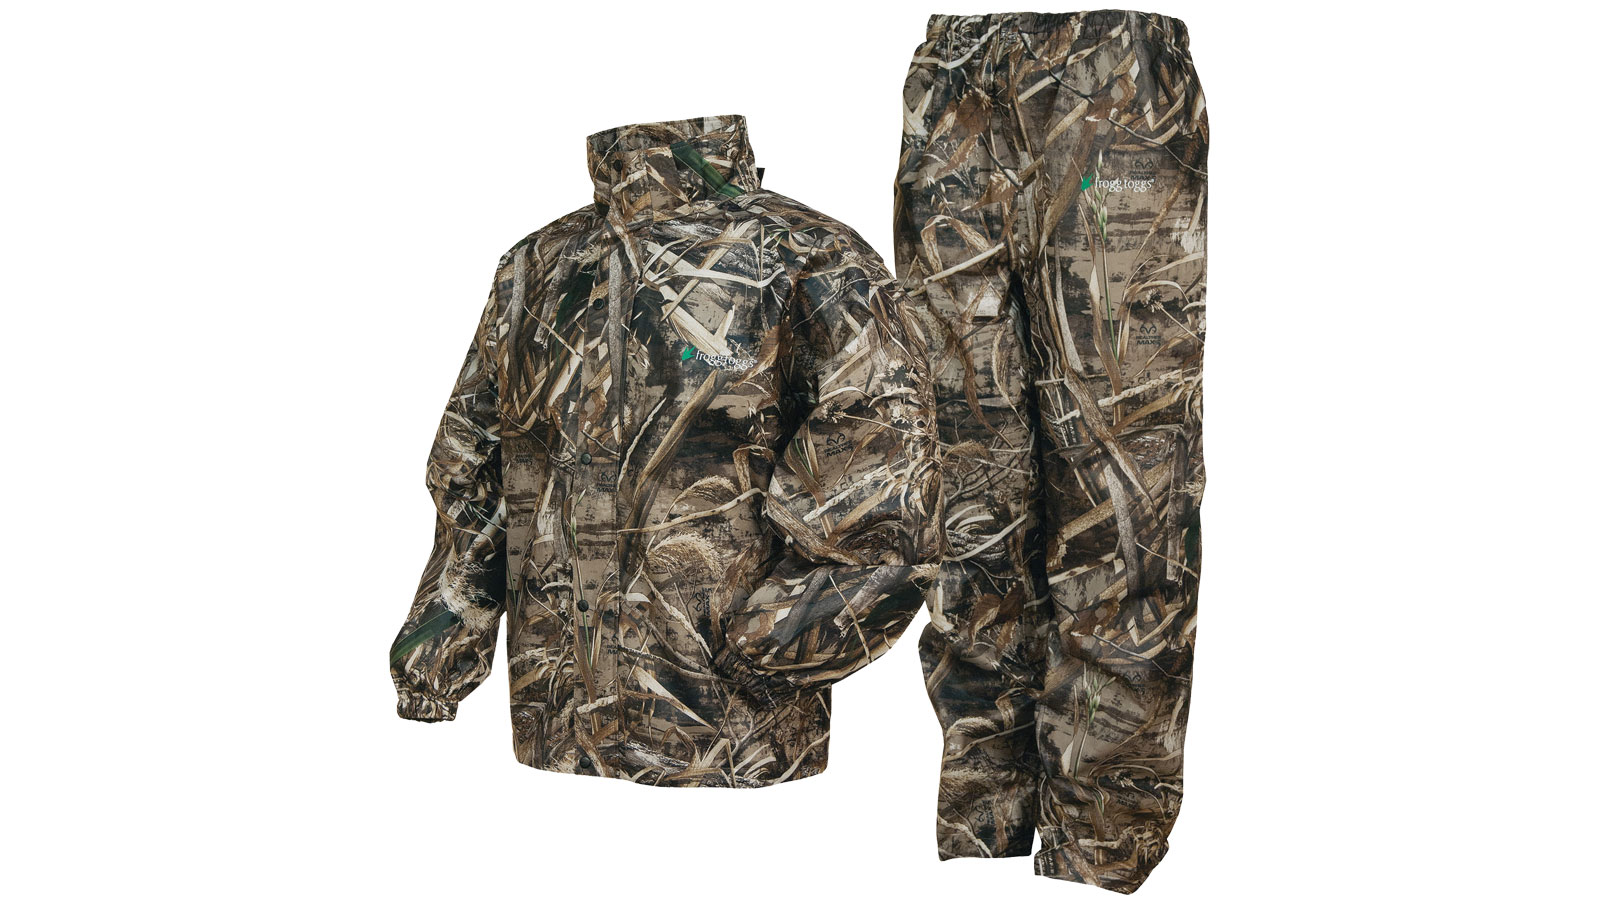 Frogg Toggs All Sports Camo Suit Max 5 Camo Small